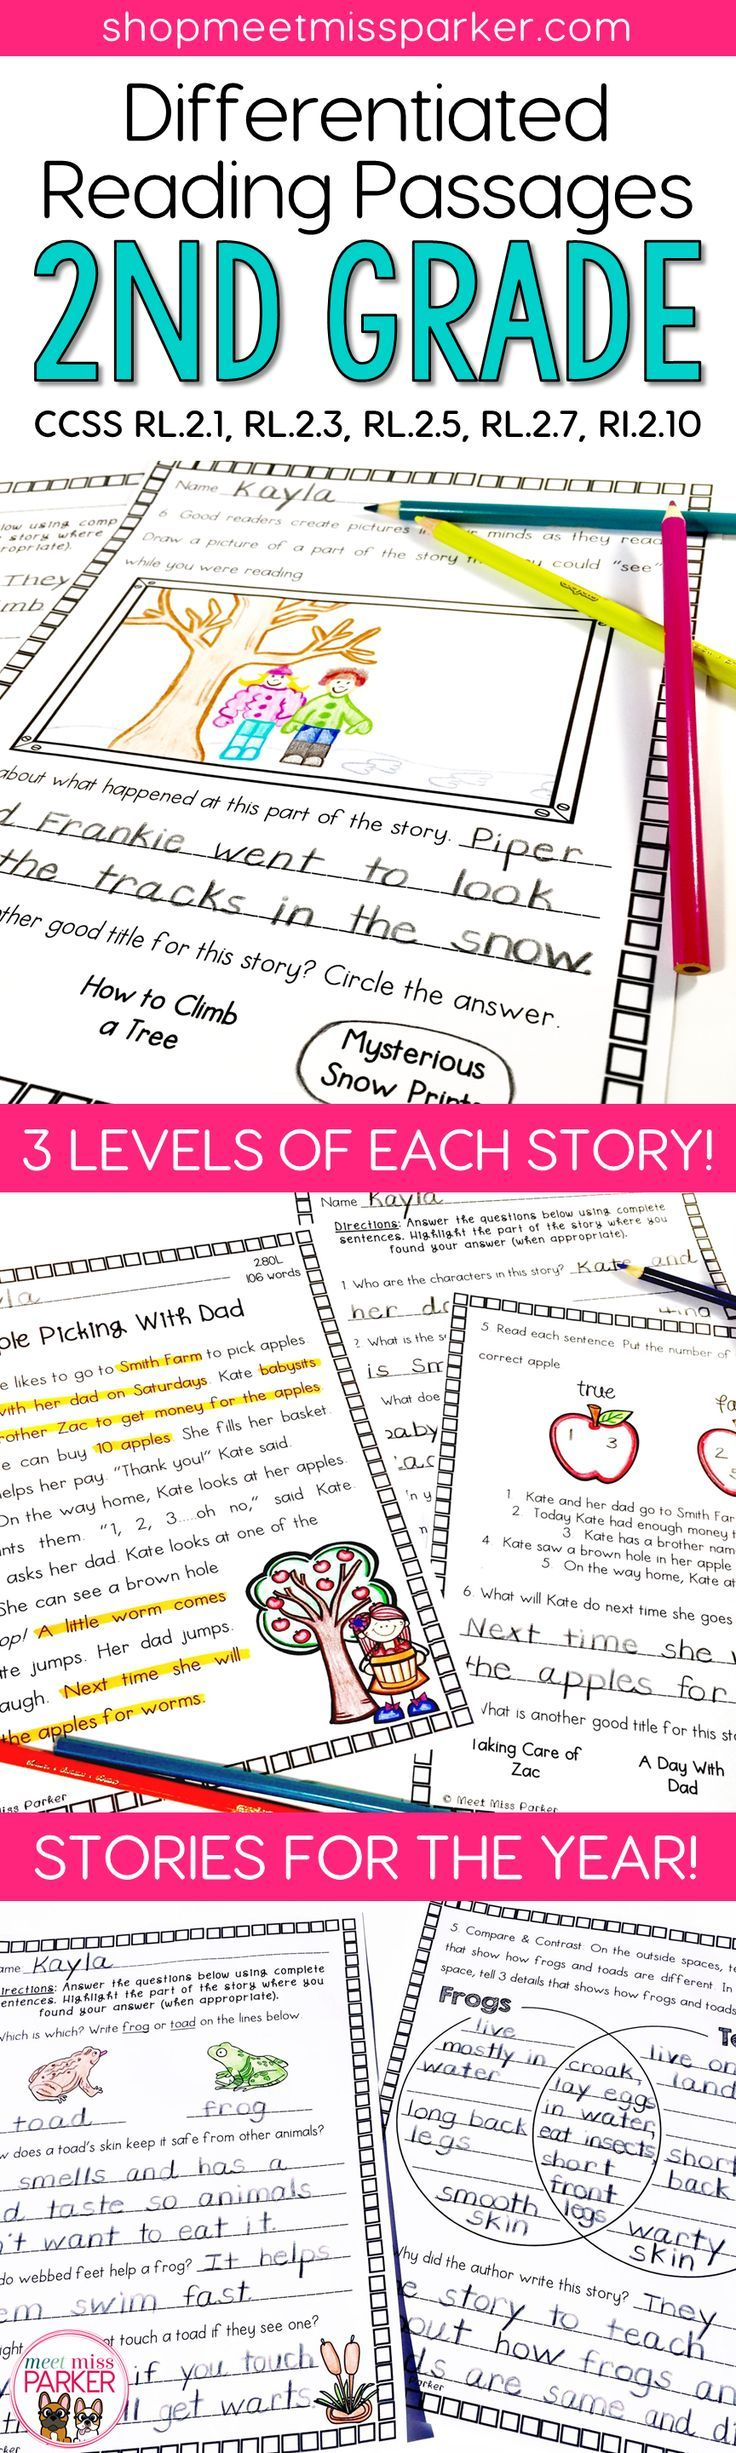 Reading Passages for 2nd grade These differentiated 2nd grade reading comprehension passages can be used for close reading, reading interventions, literacy center activities, homework, and guided reading groups in your grade 2, or 3rd grade classroom! text evidence, differentiated reading passages, reading comprehension activities, 2nd grade, text evidence, close reading